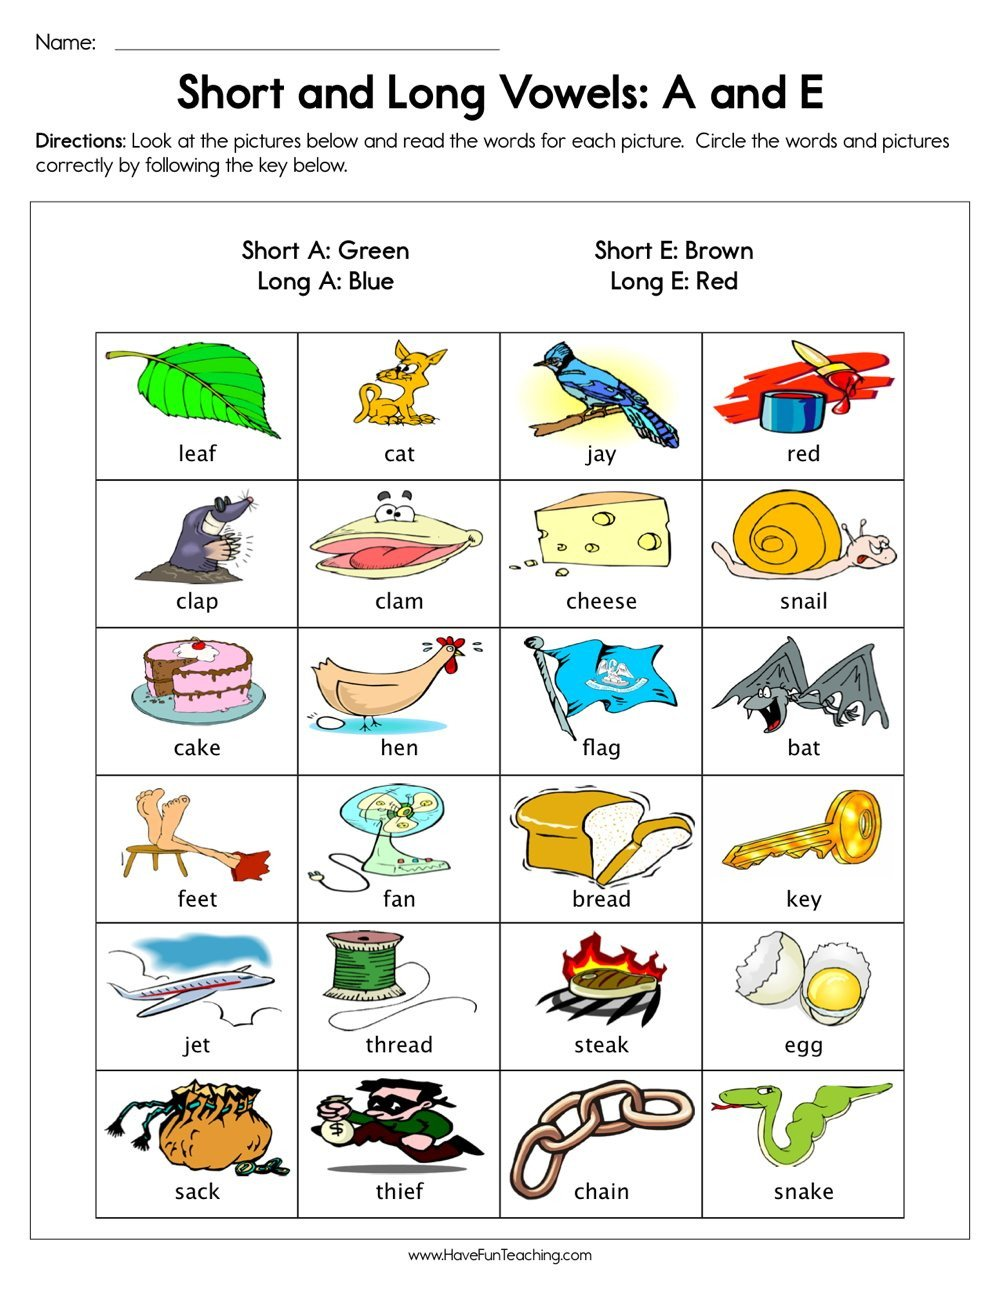 Short Vowel Worksheet Kindergarten Short and Long Vowels A and E Worksheet